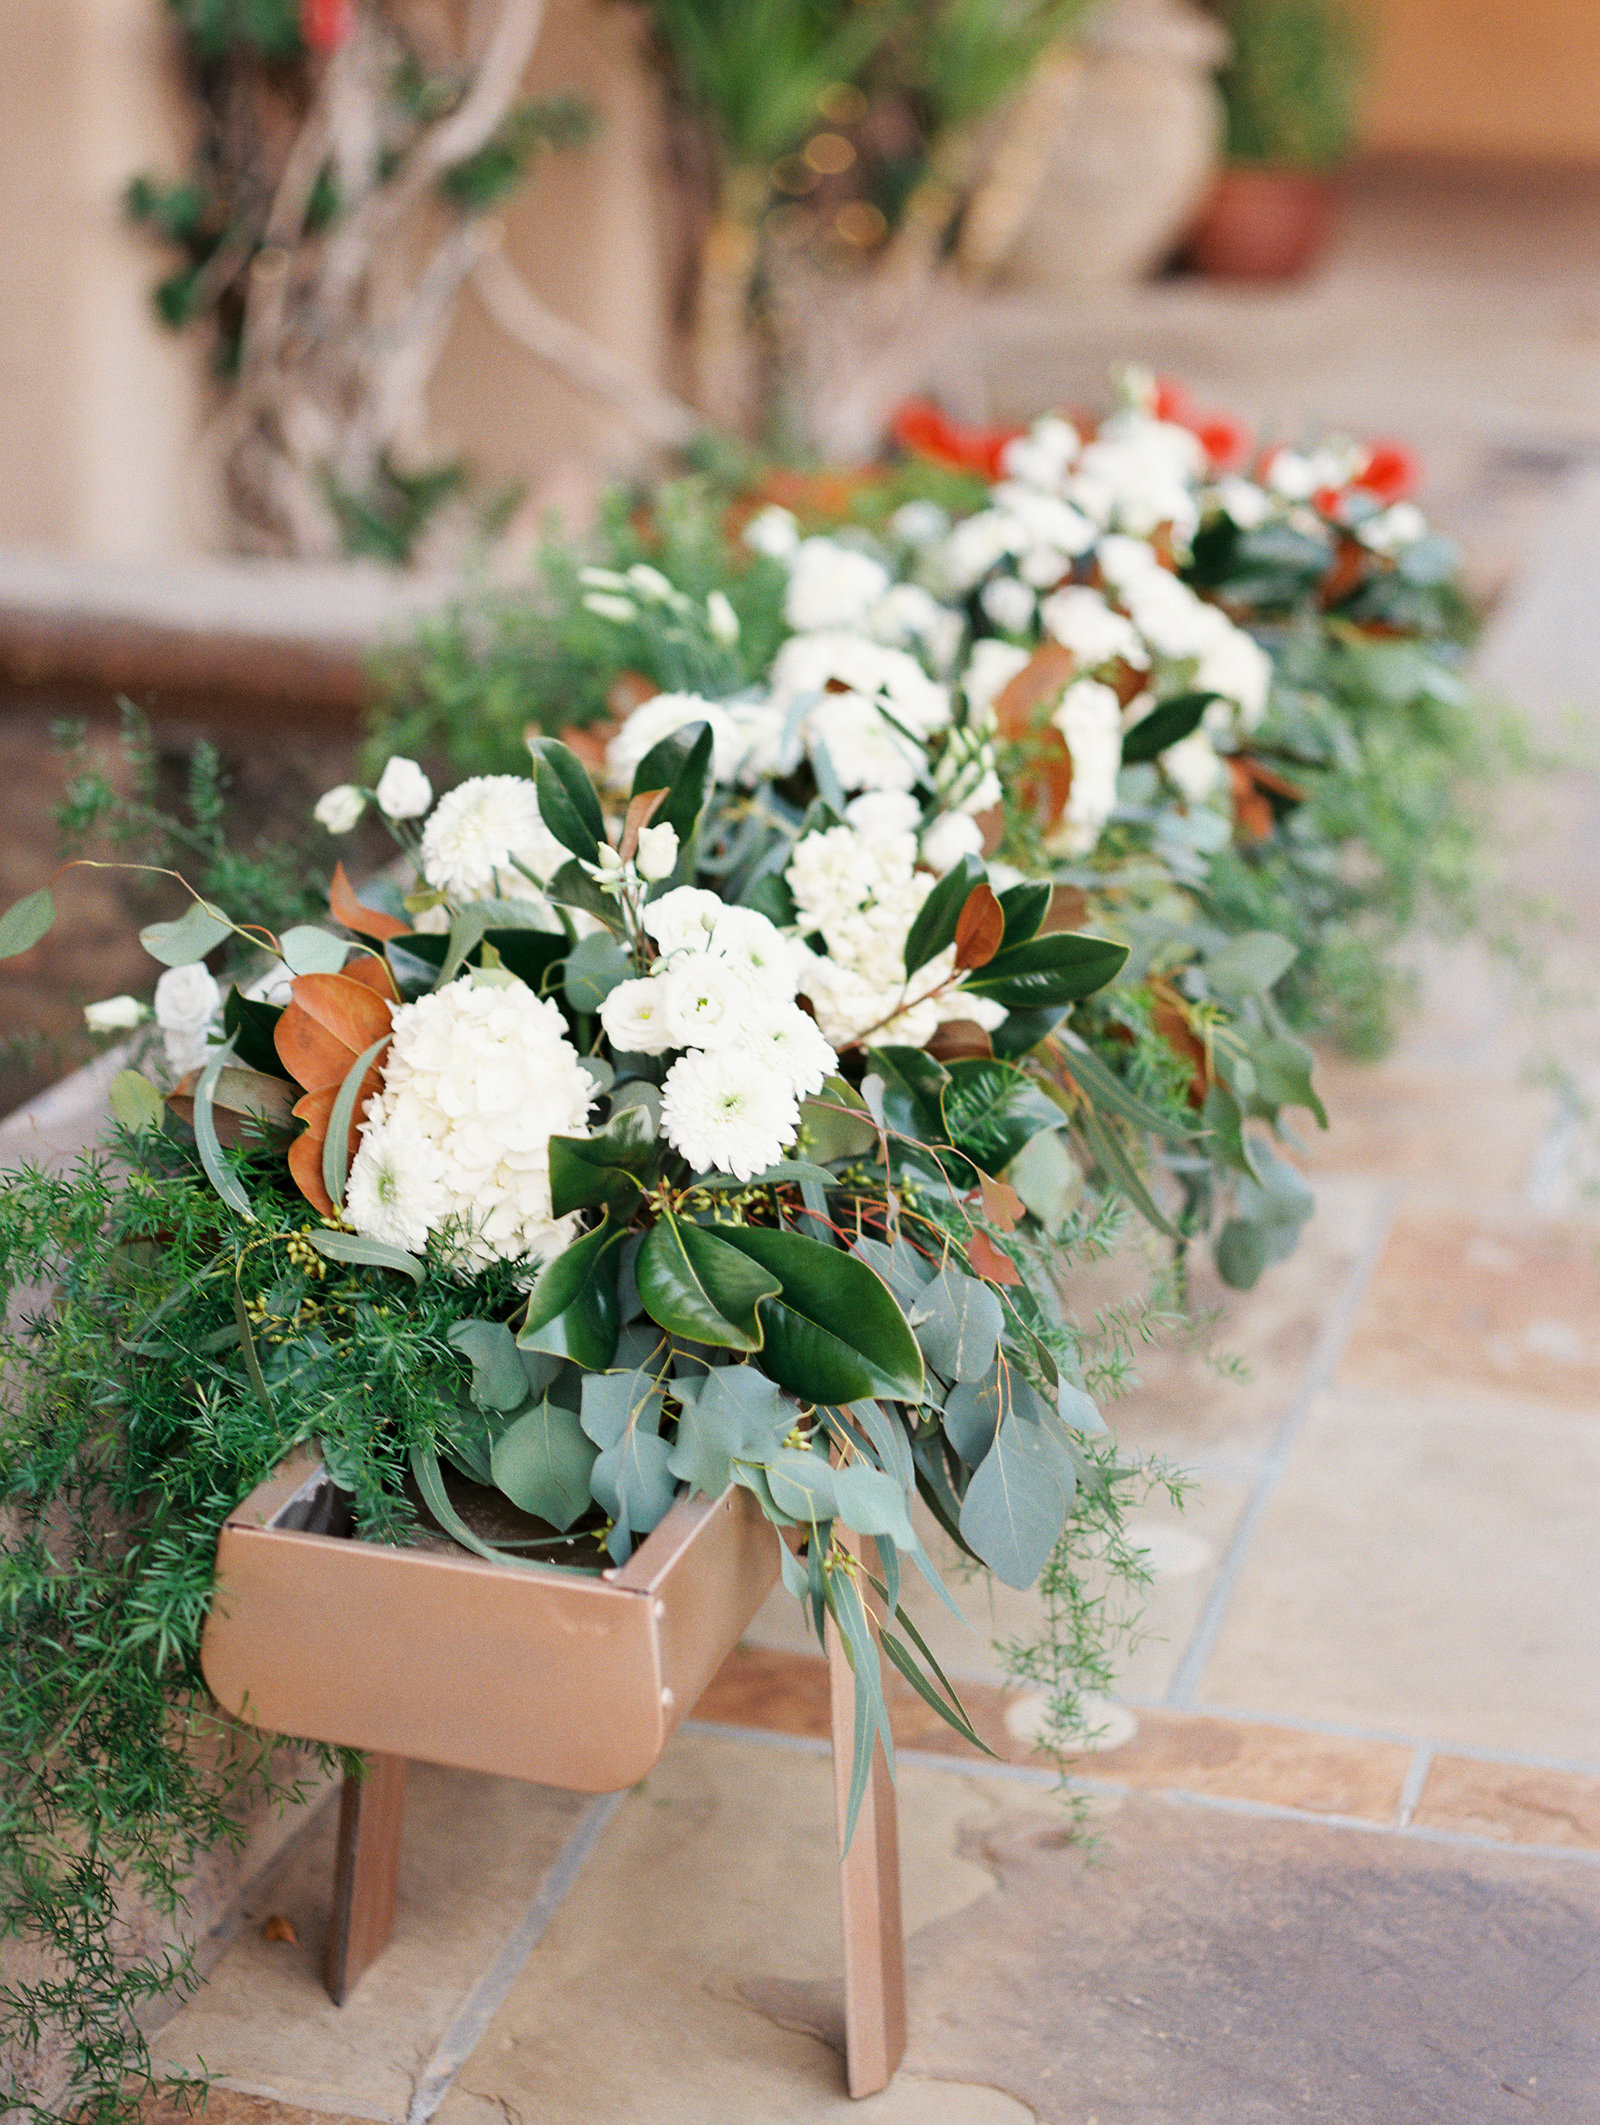 Your-Event-Florist-Arizona-Wedding-Flowers77